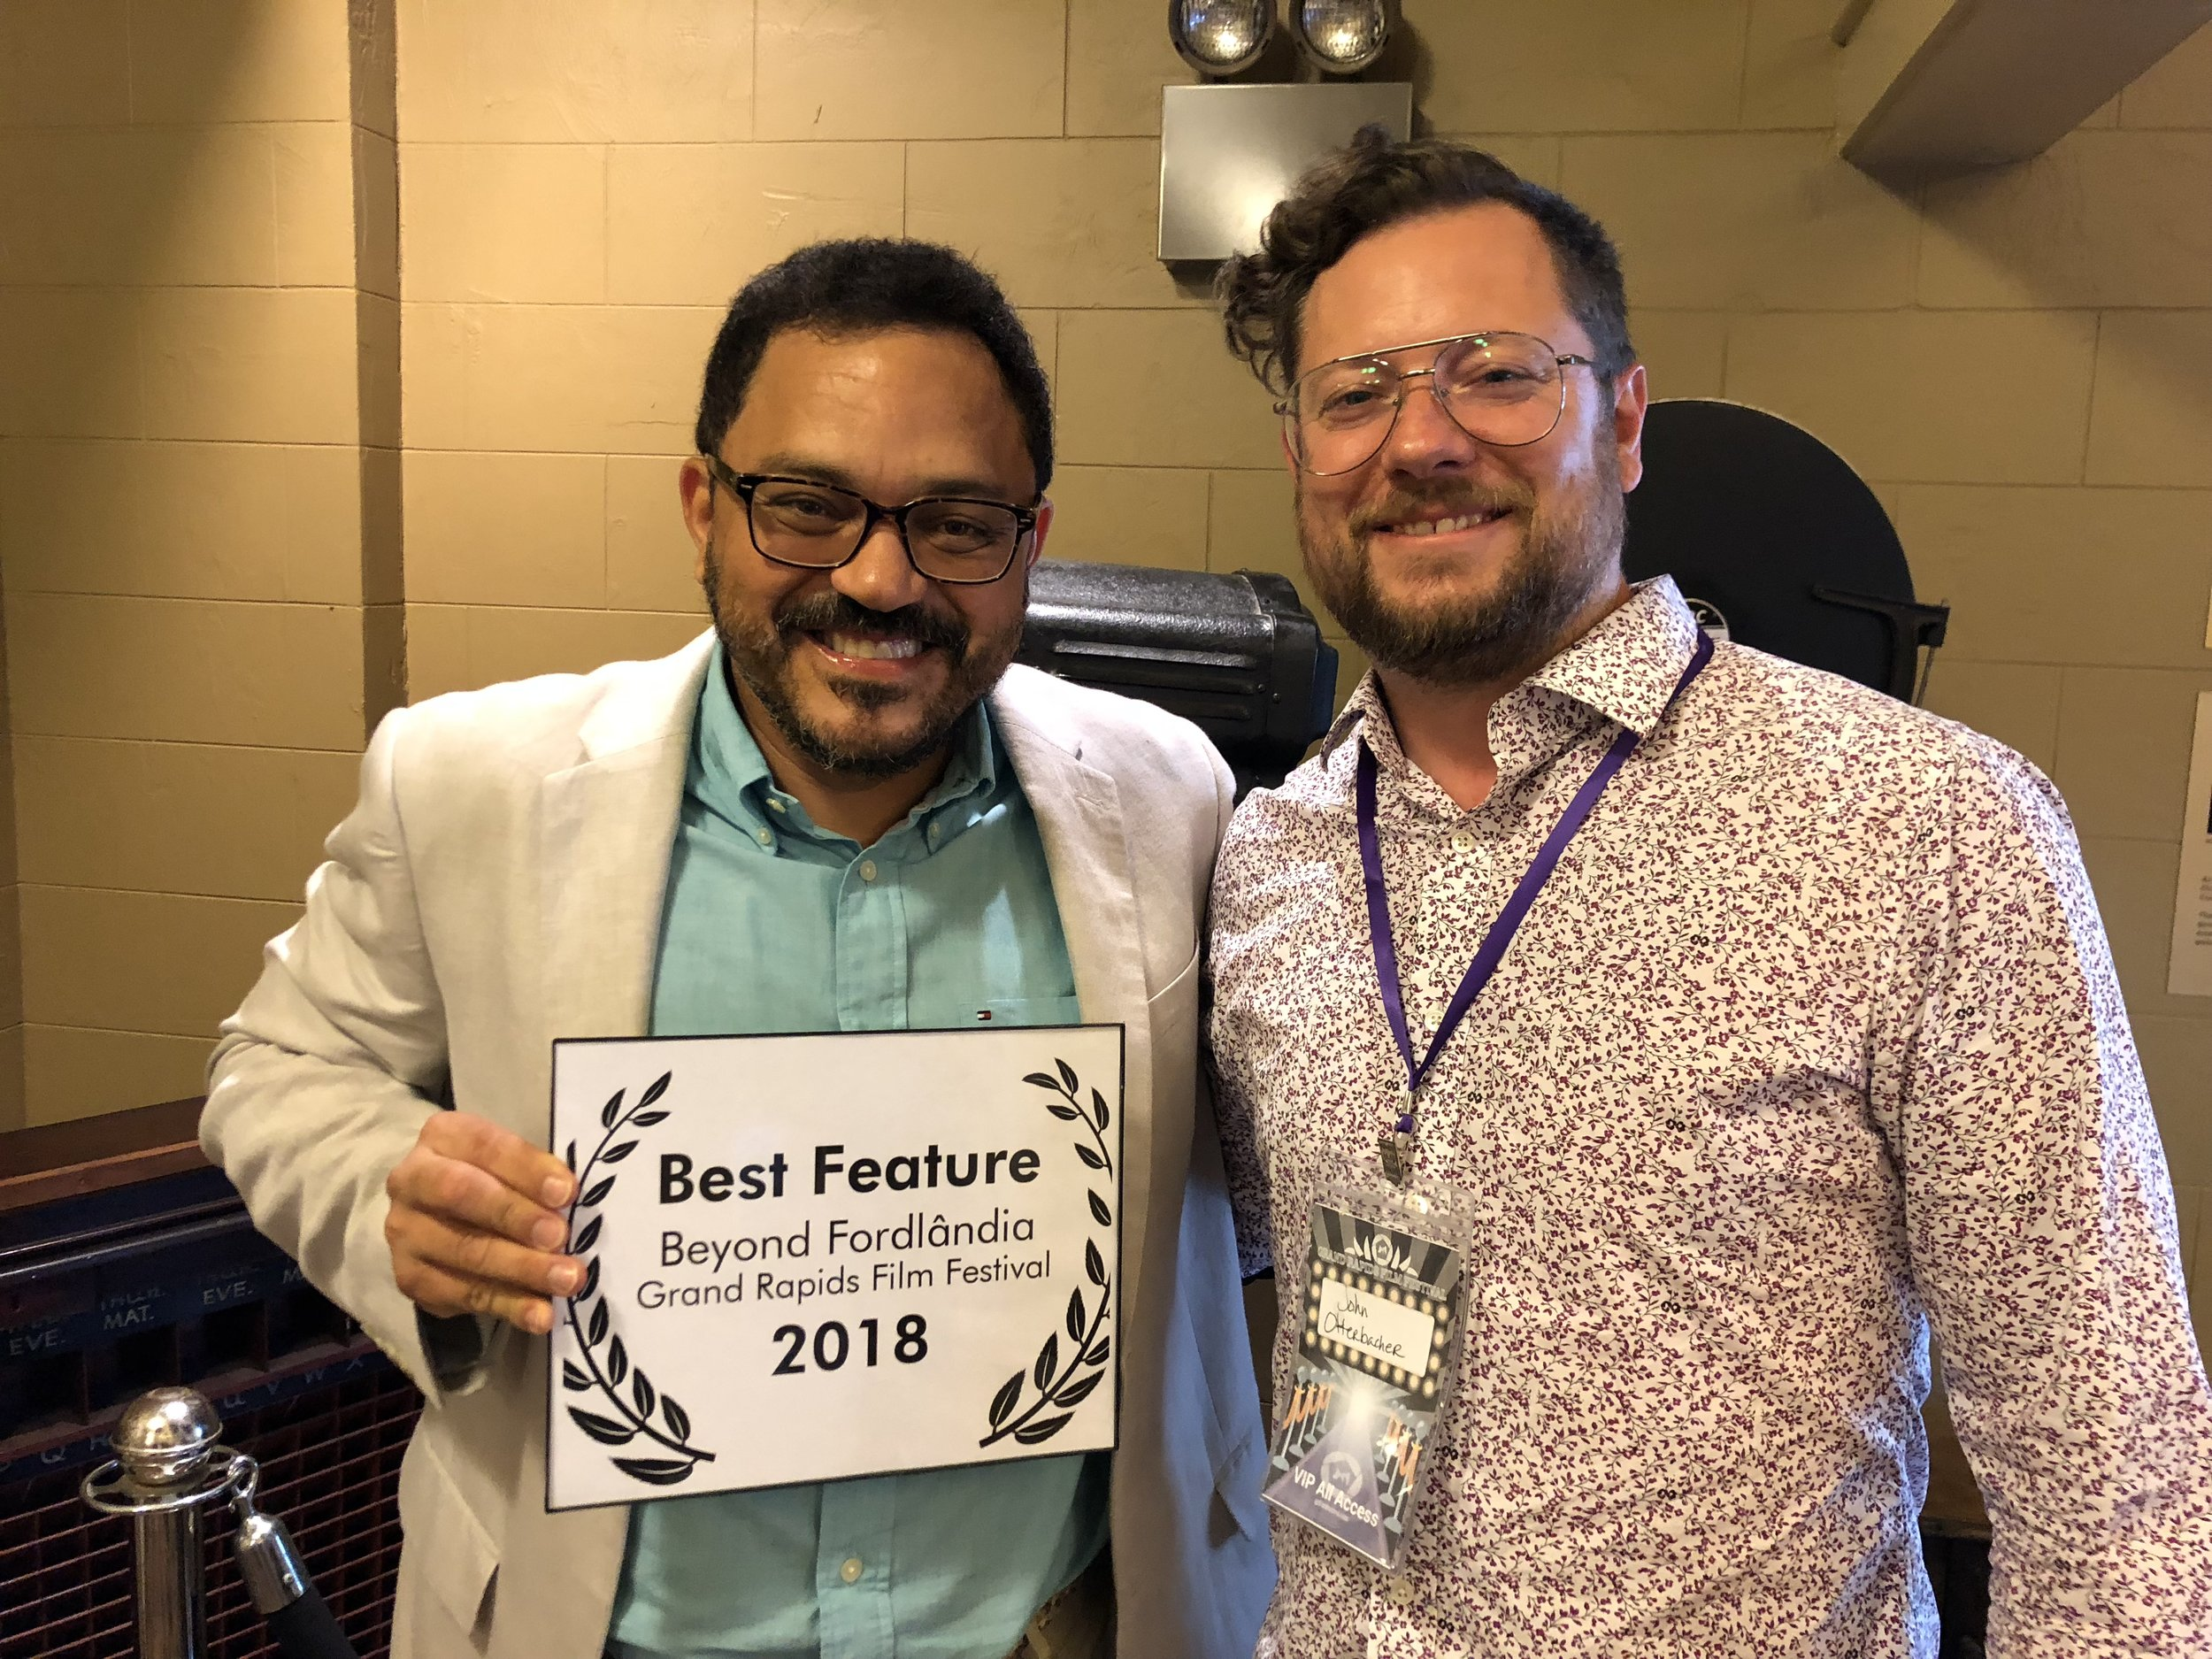 Marcos Colón (on the left, director of Beyond Fordlândia) and John Otterbacher director of the GRFF in the event.